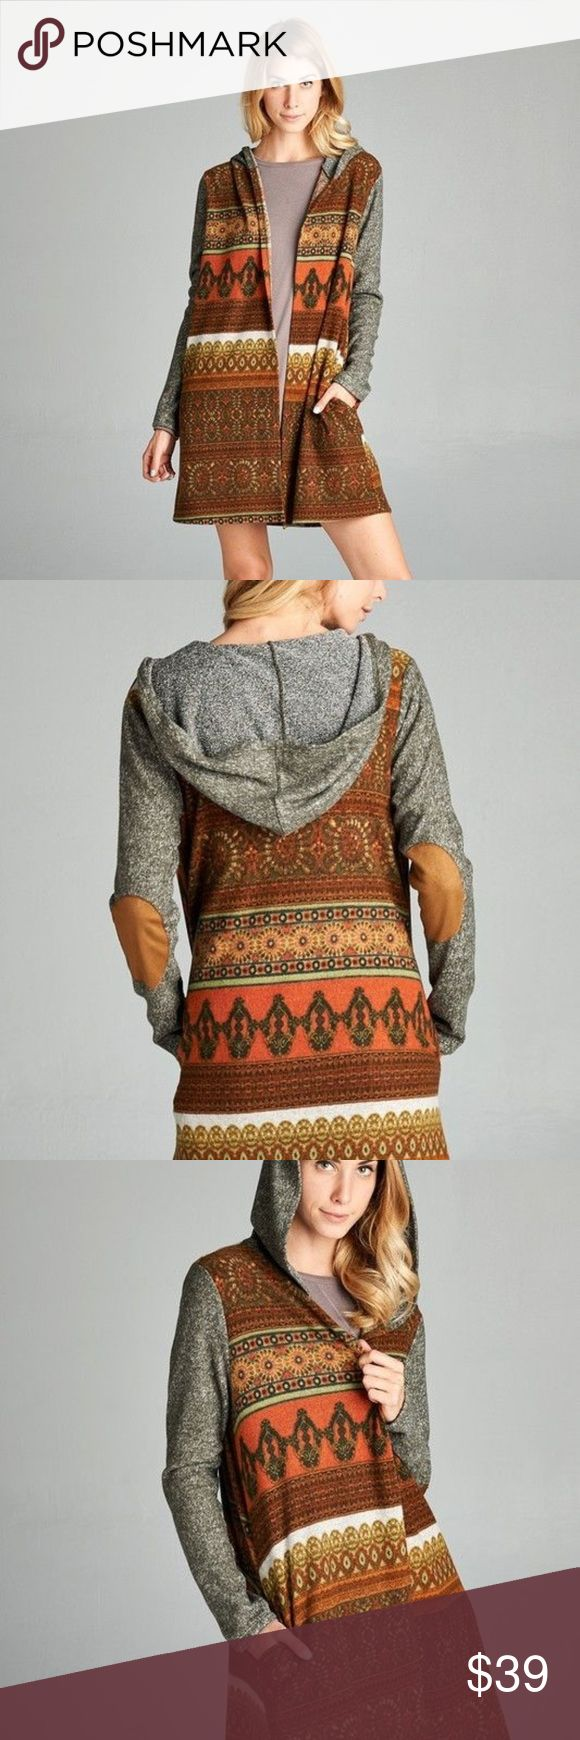 Ladies Rust Print Cardigan Olive Sleeves Rustic arabesque print brush hacci knit cardigan with long contrast mélange brushed sleeves and solid faux suede elbow patches. Our hooded duster comes with slit pockets to keep your fingers toasty. Great layering piece! Contrast: 96% Polyester, 4% Spandex Fabric 65% Polyester, 35% Rayon ODDY Sweaters Cardigans